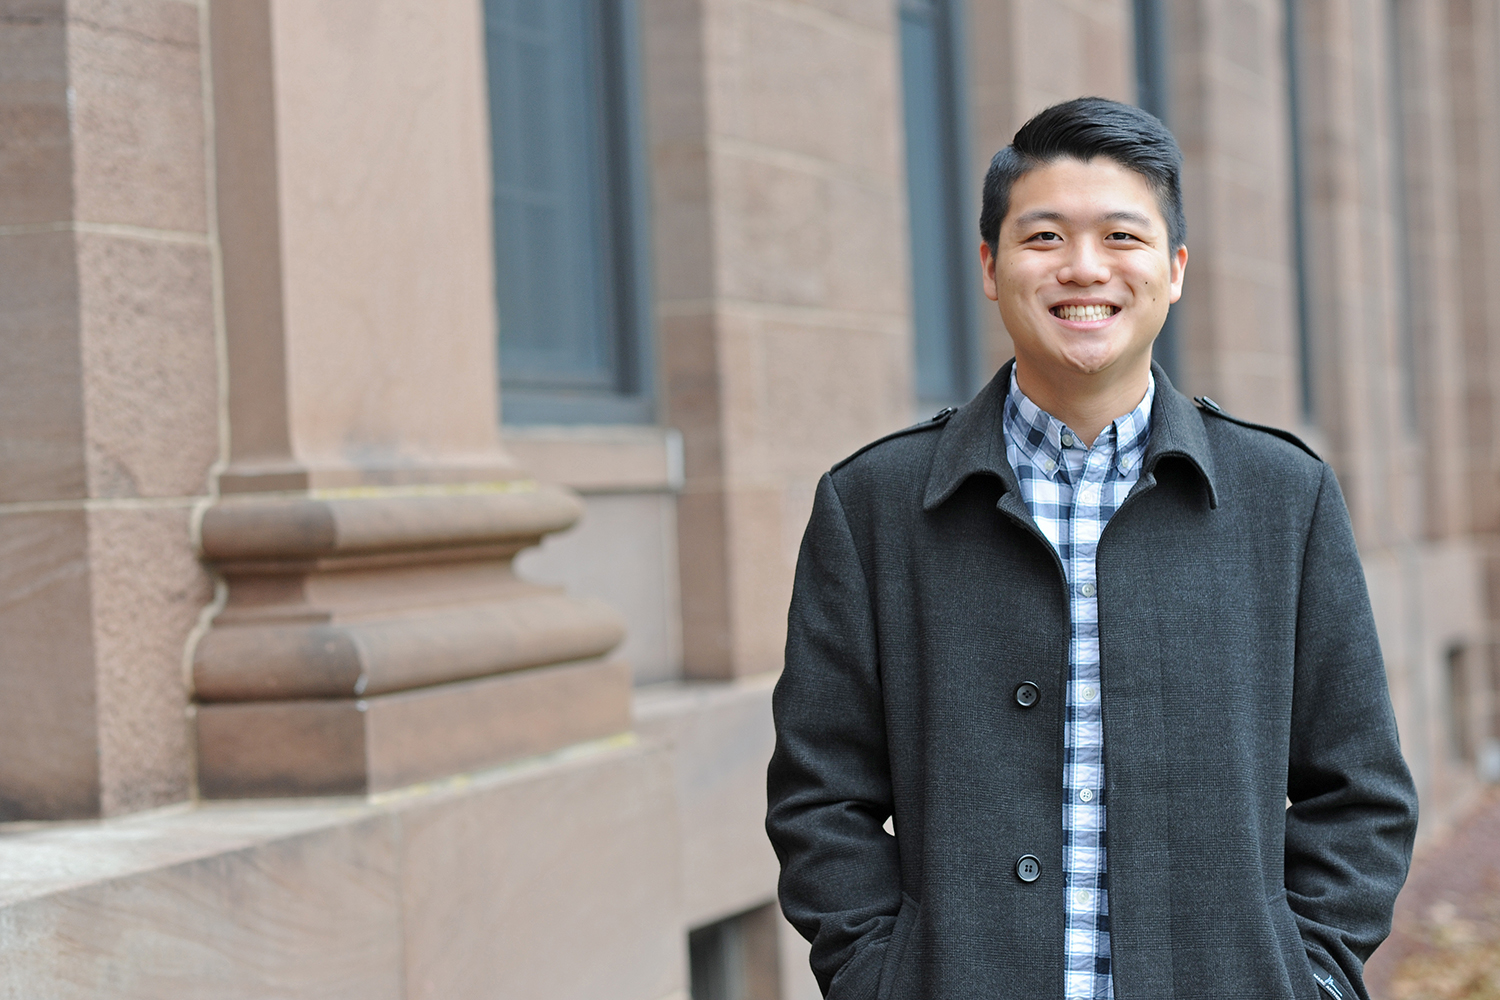 Alton Wang '16 is a sociology and government double major who plans to enter public service after graduation, advocating for the rights of the Asian American and Pacific Islander community.